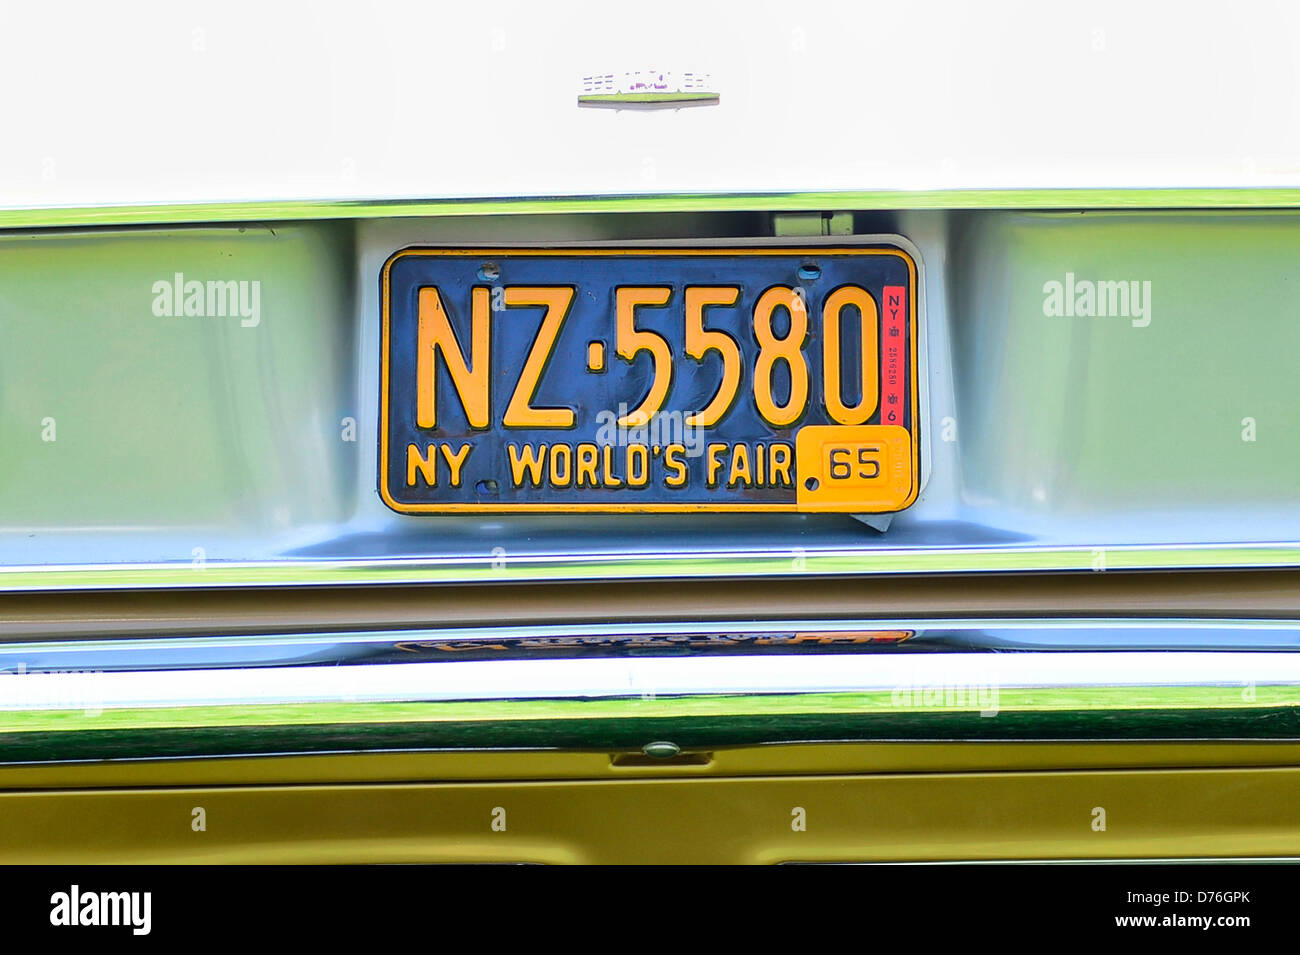 Floral Park, New York, U.S. April 28, 2013. This New York World's Fair 1965 license plate is on the rear of Don Stock Photo